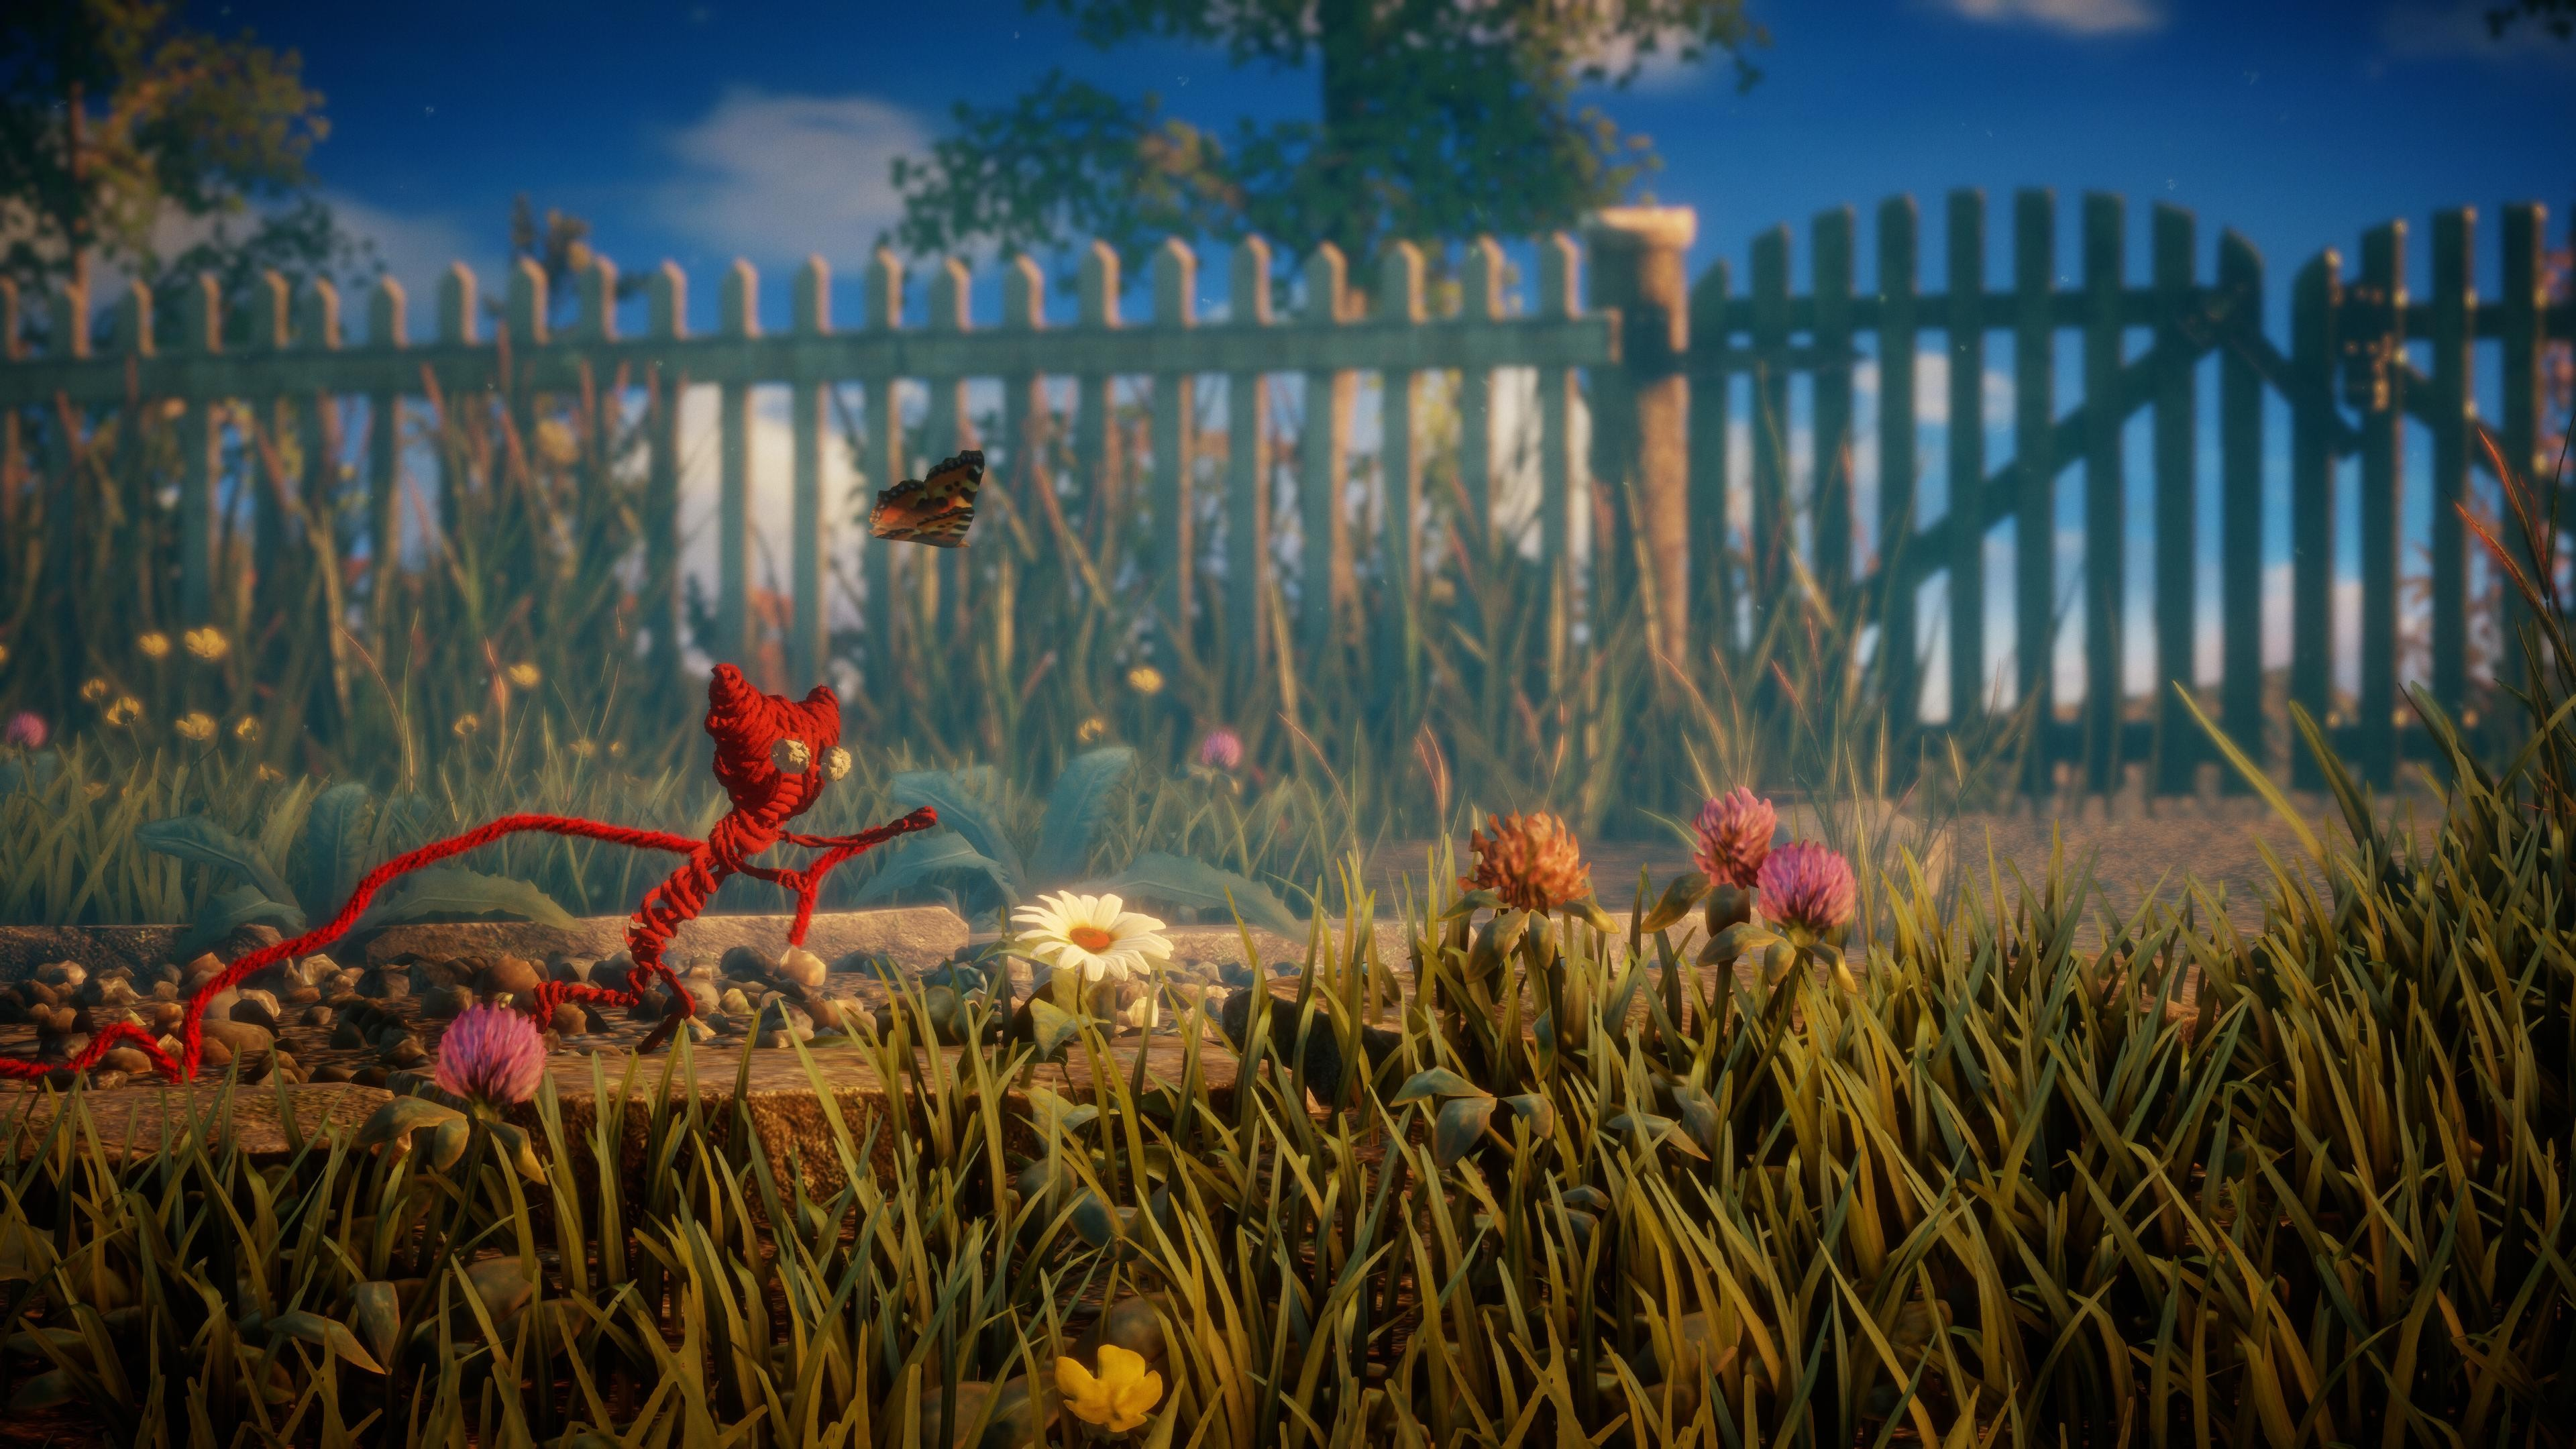 Wallpaper Unravel Best Game Game Quest Arcade